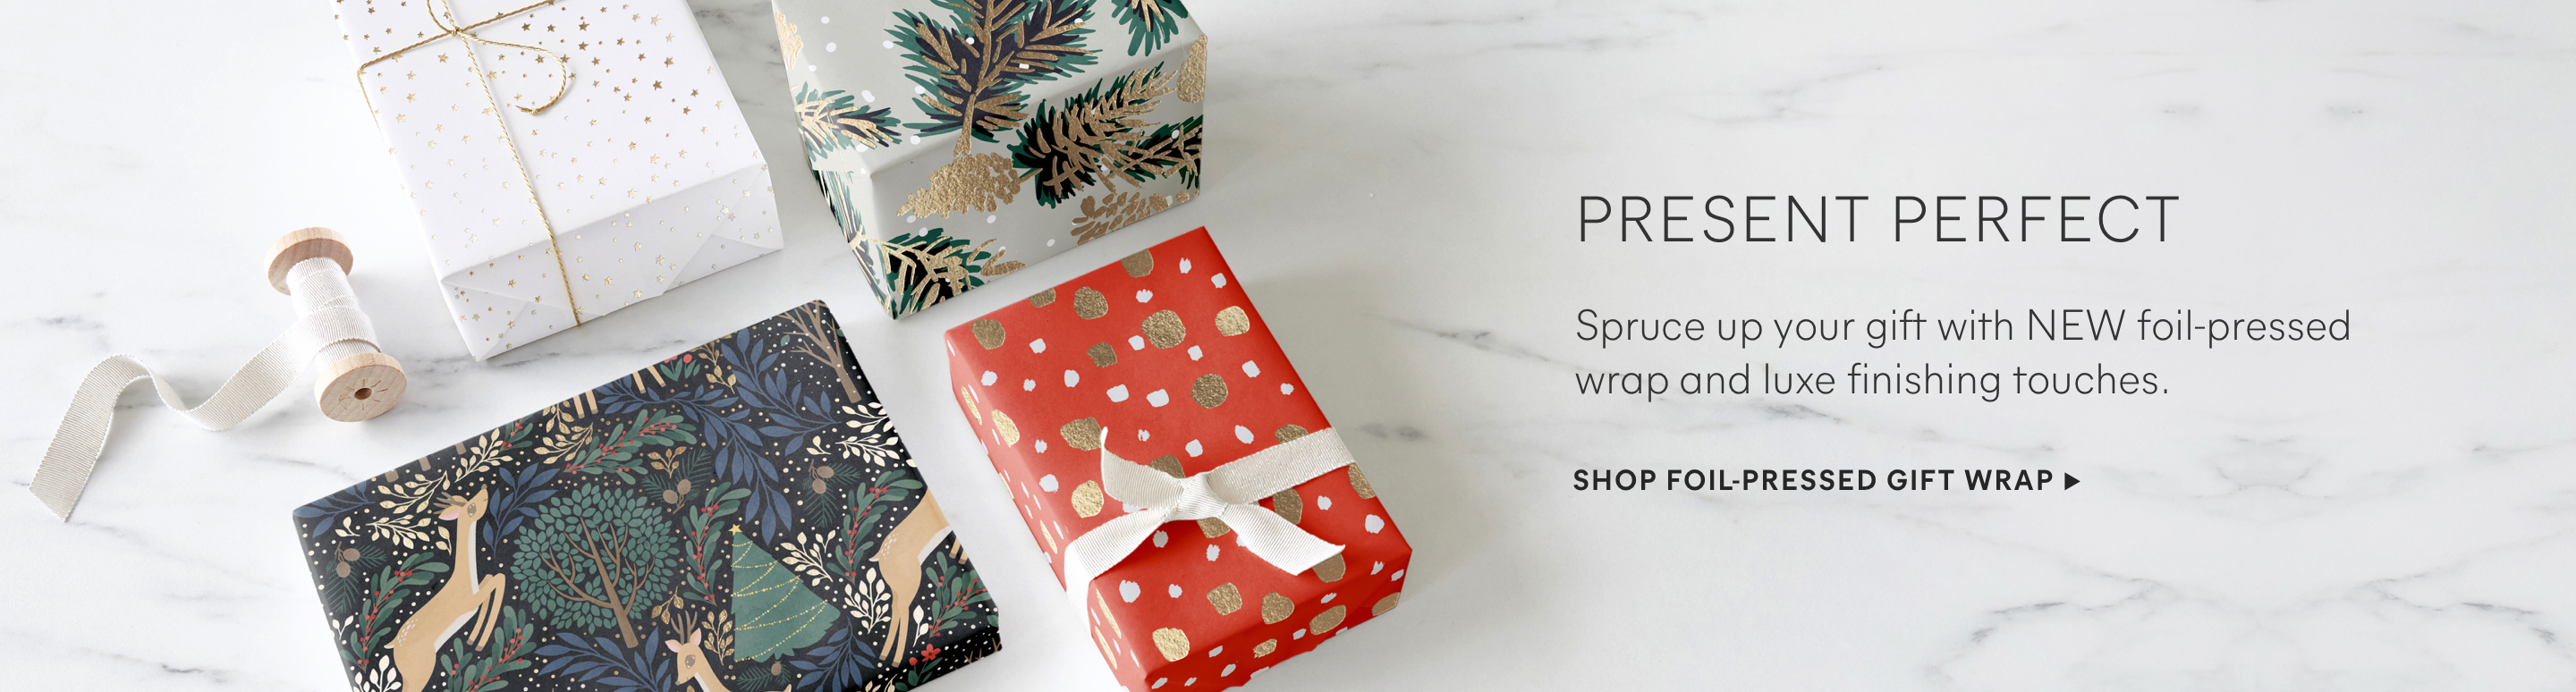 Foil-Pressed Gift Wrap